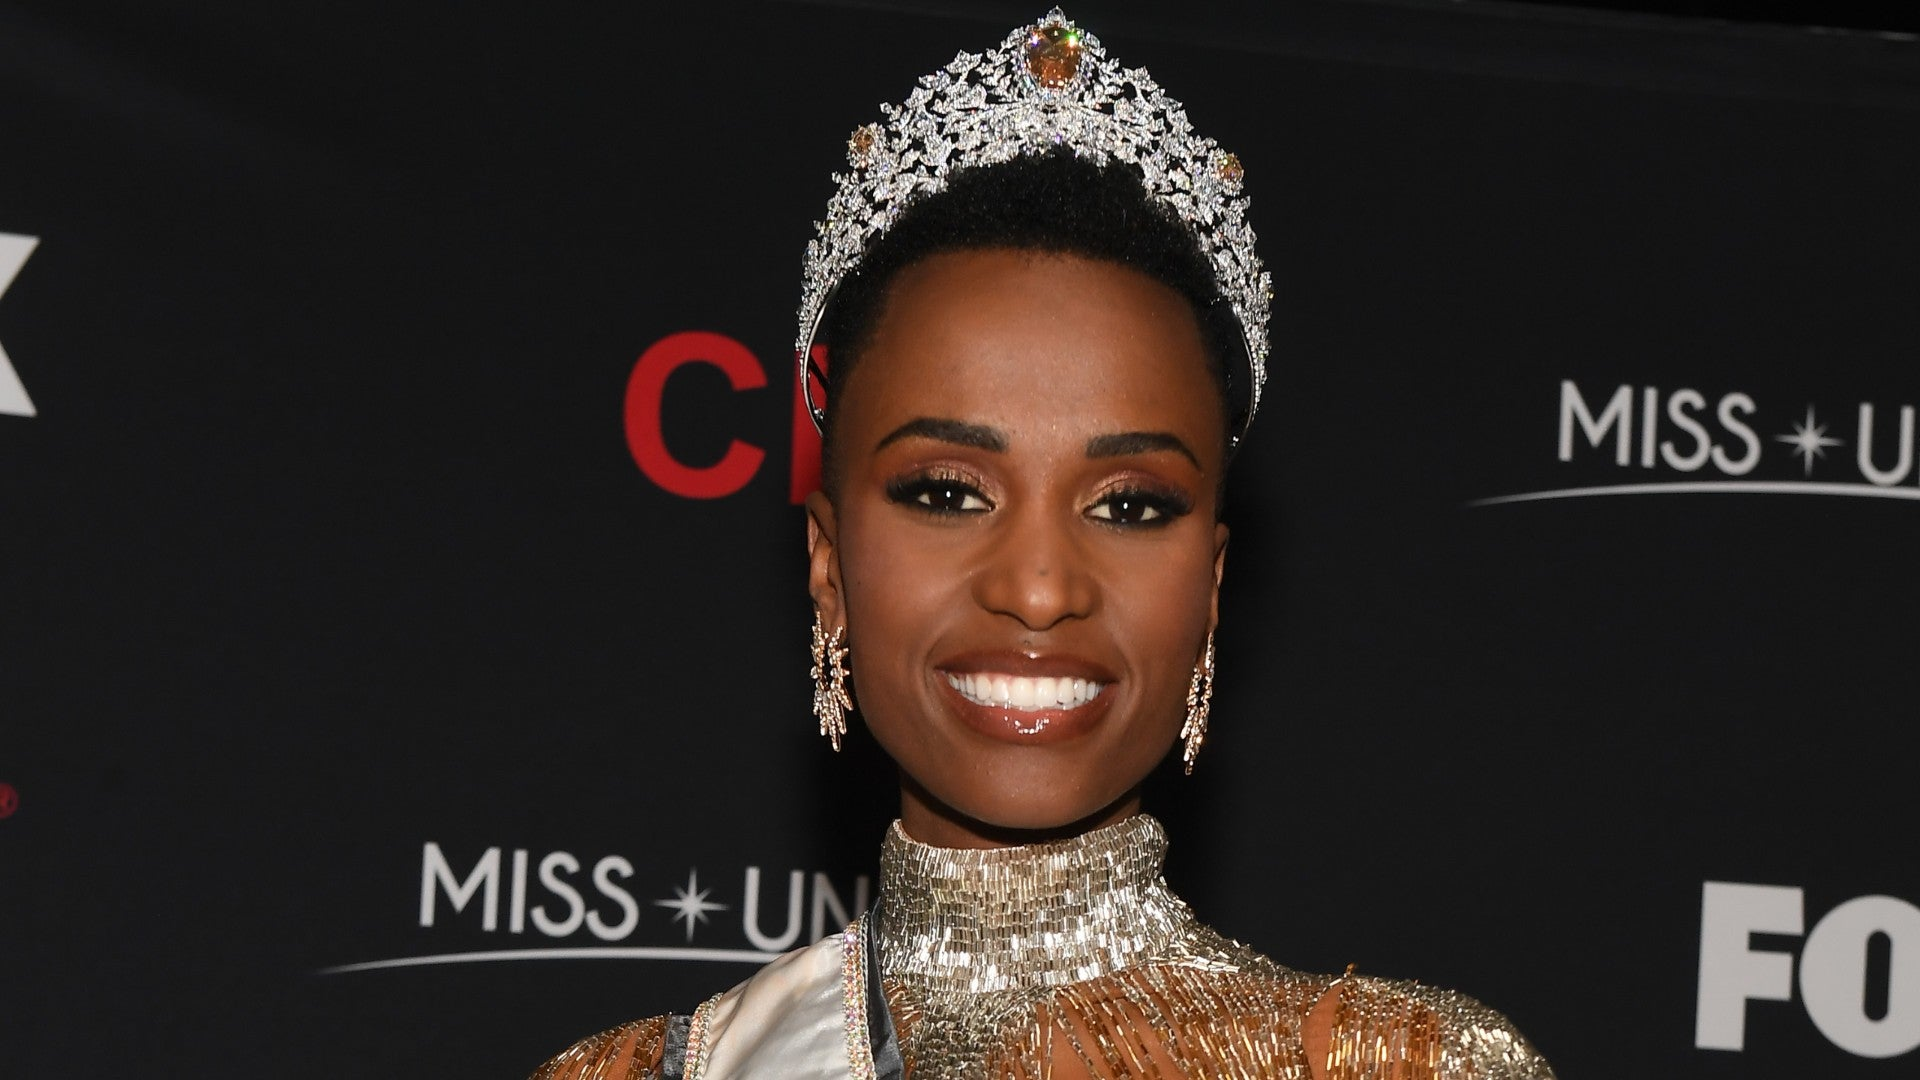 5 Interesting Facts About Miss Universe Zozibini Tunzi